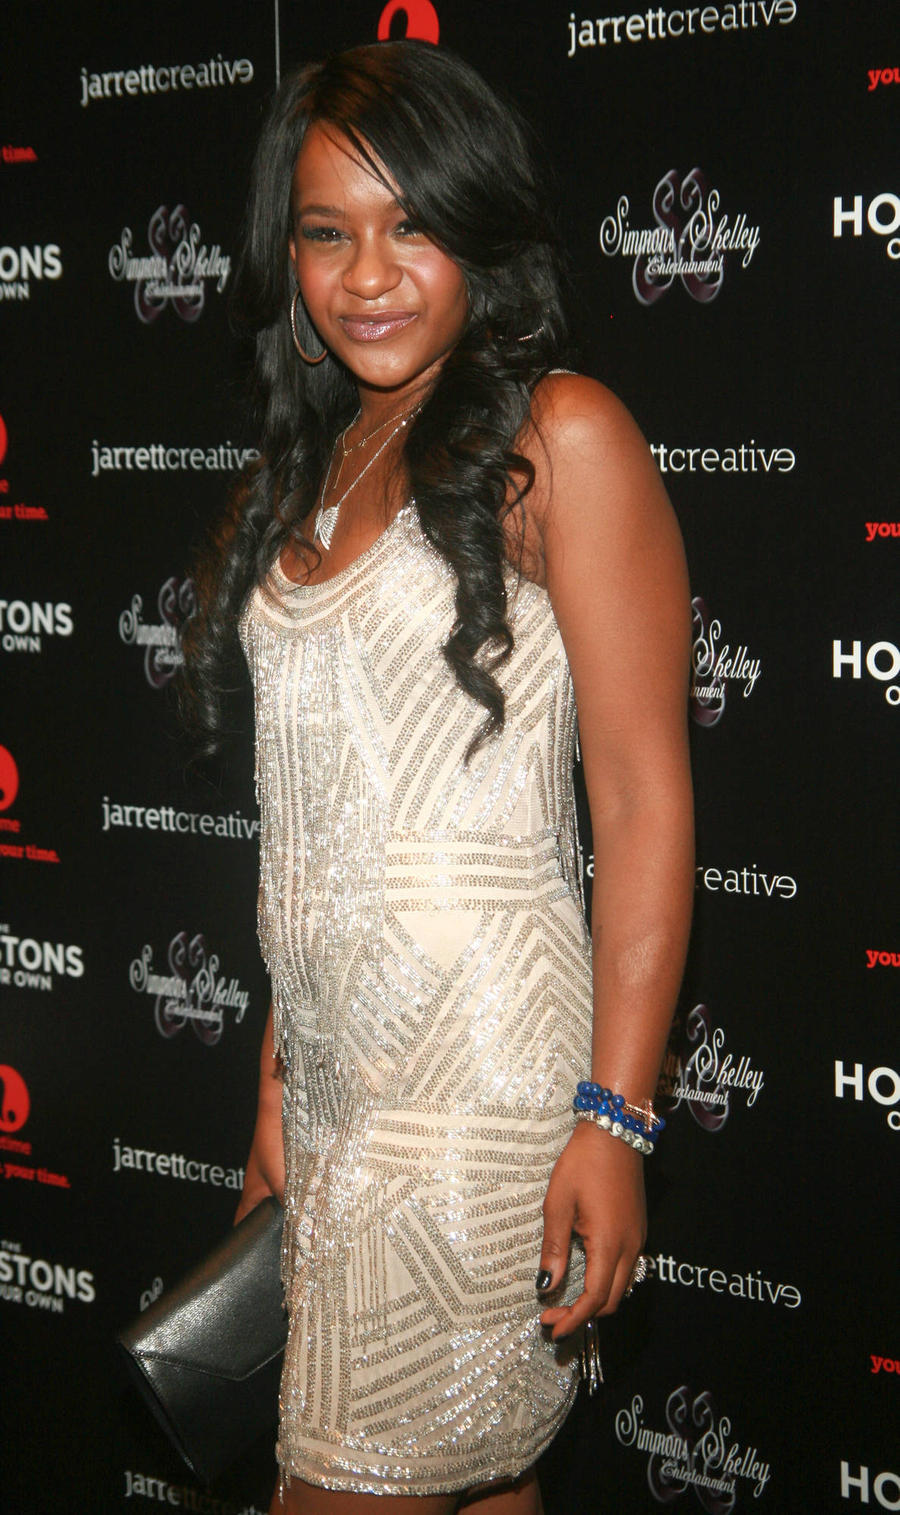 Bobbi Kristina Brown's Boyfriend Opens Up About Marriage And Miscarriage Reports